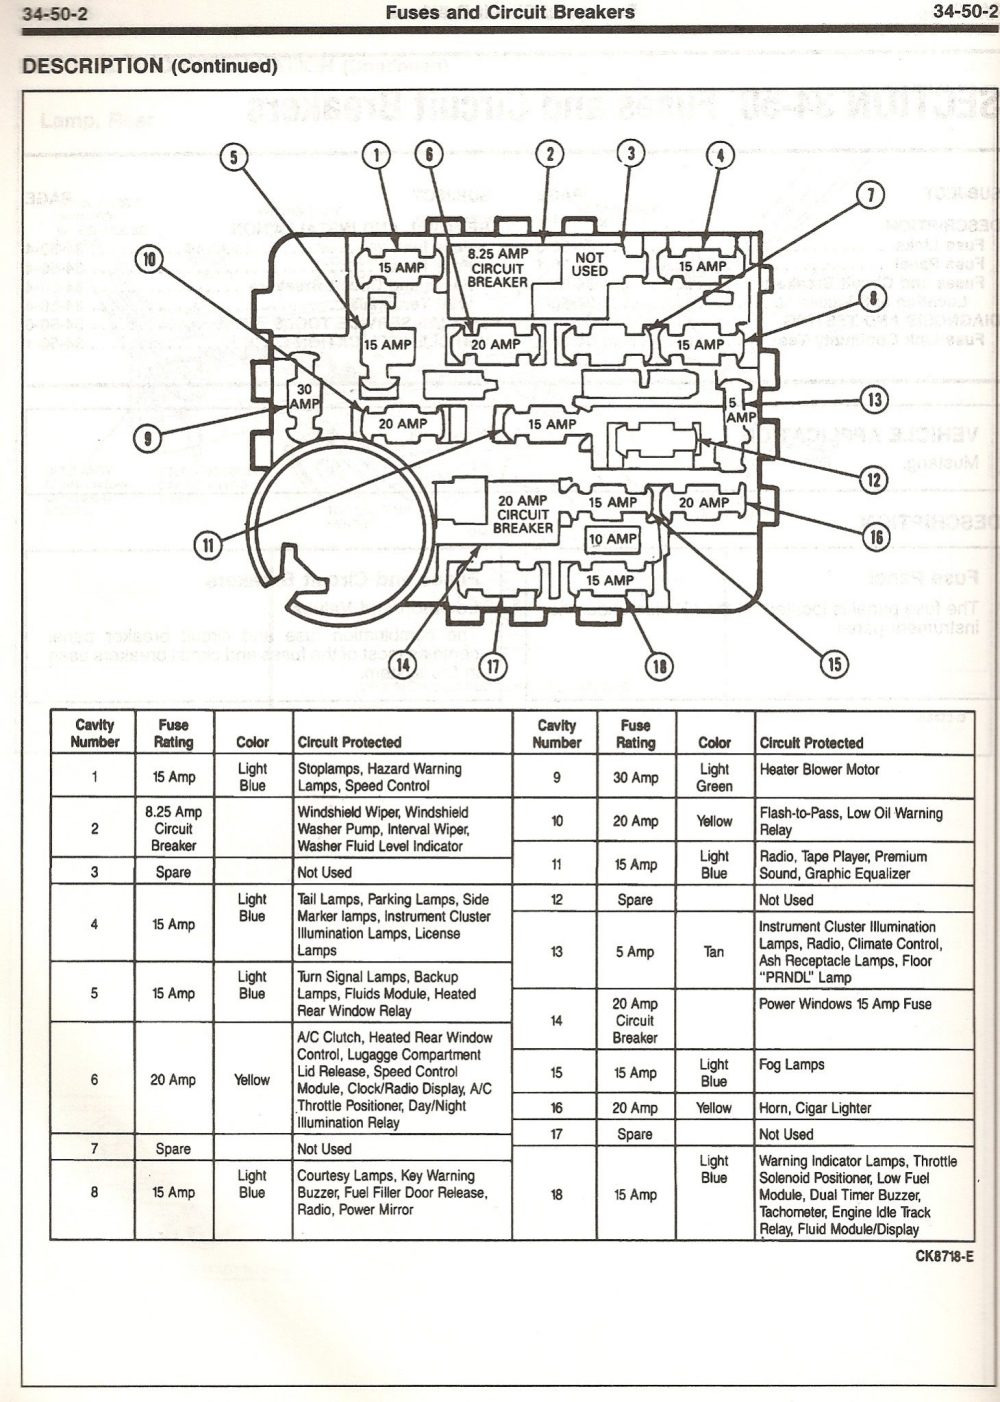 medium resolution of 1988 mustang fuse box wiring wiring diagram database 88 mustang gt fuse box diagram 88 mustang fuse box